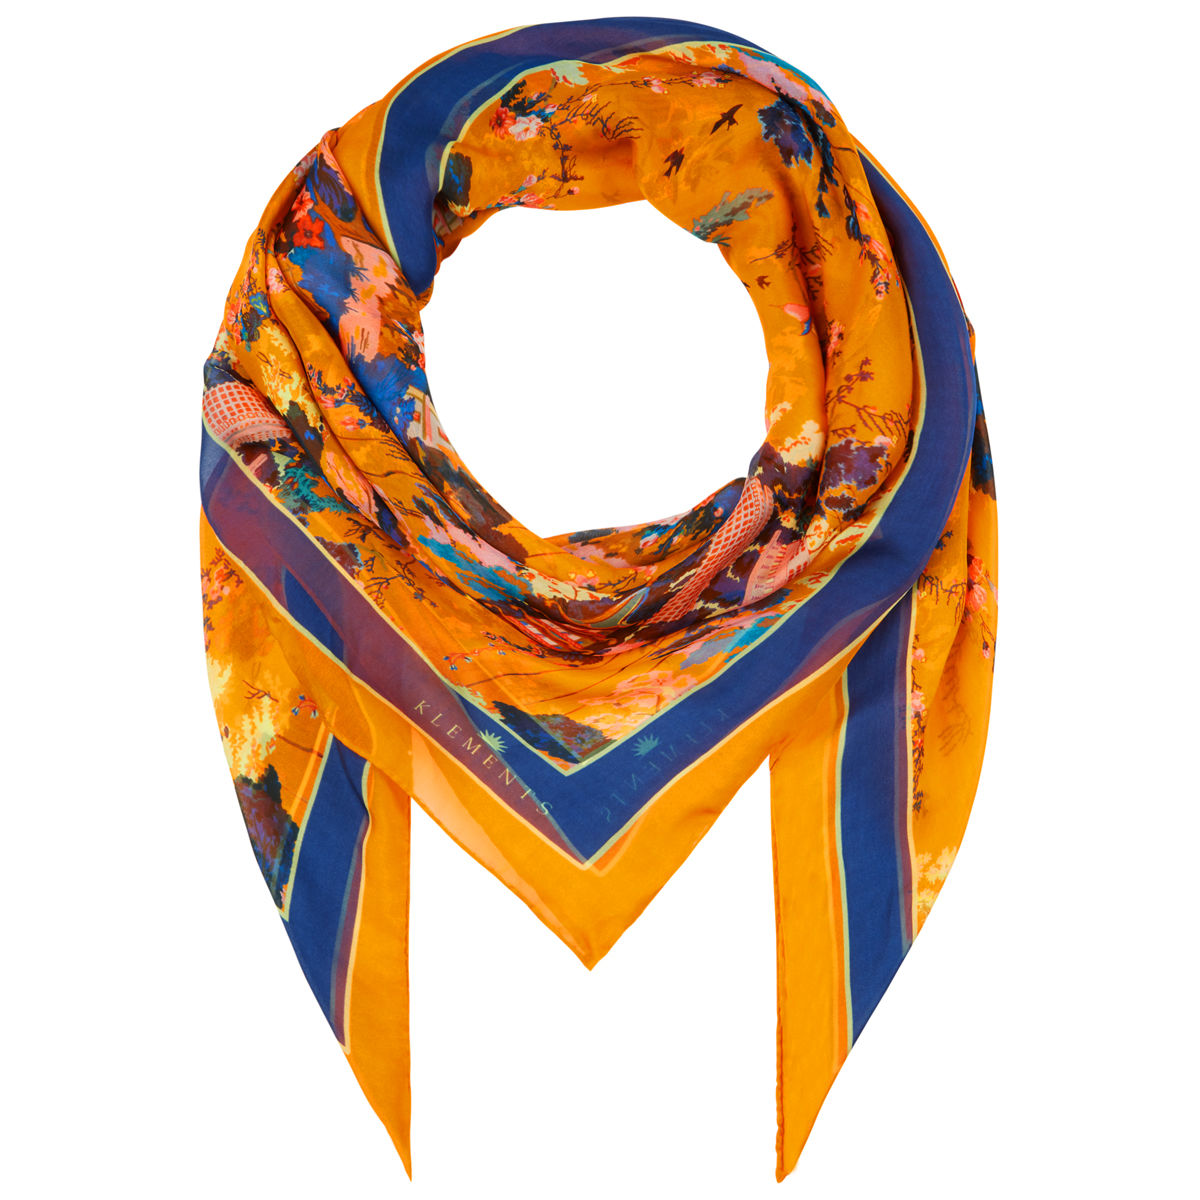 Large scarf in Urban Chinoiserie (satsuma) print - product images  of